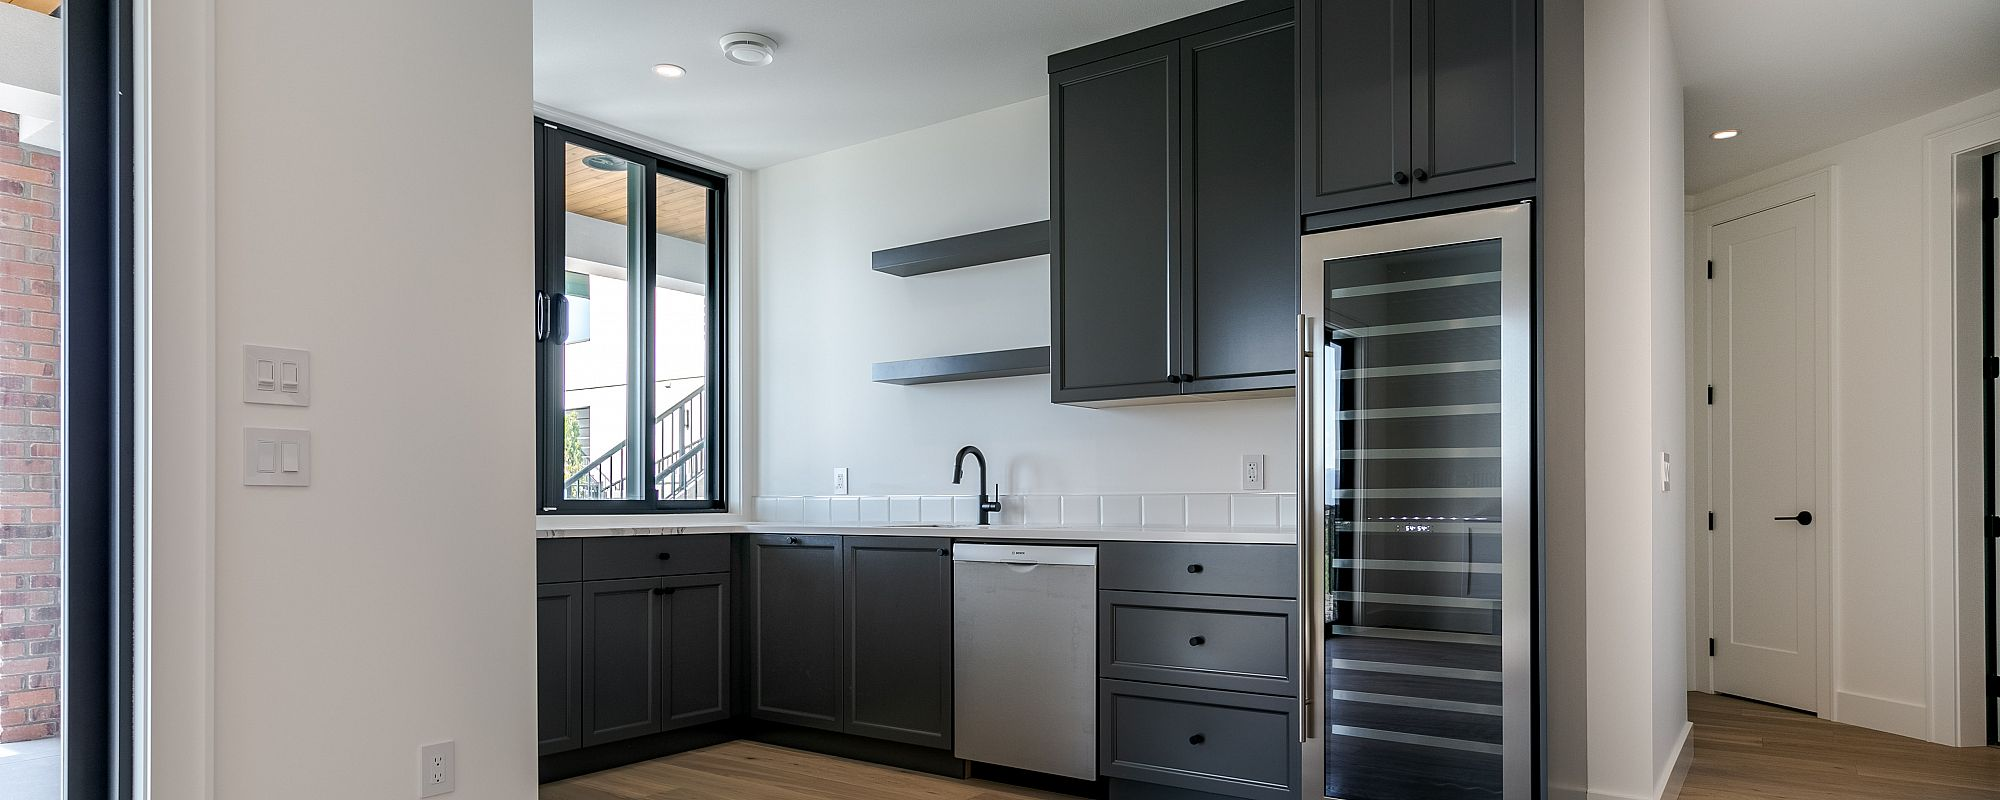 Custom basement wet bar with wine fridge and black cabinets by Stark Homes